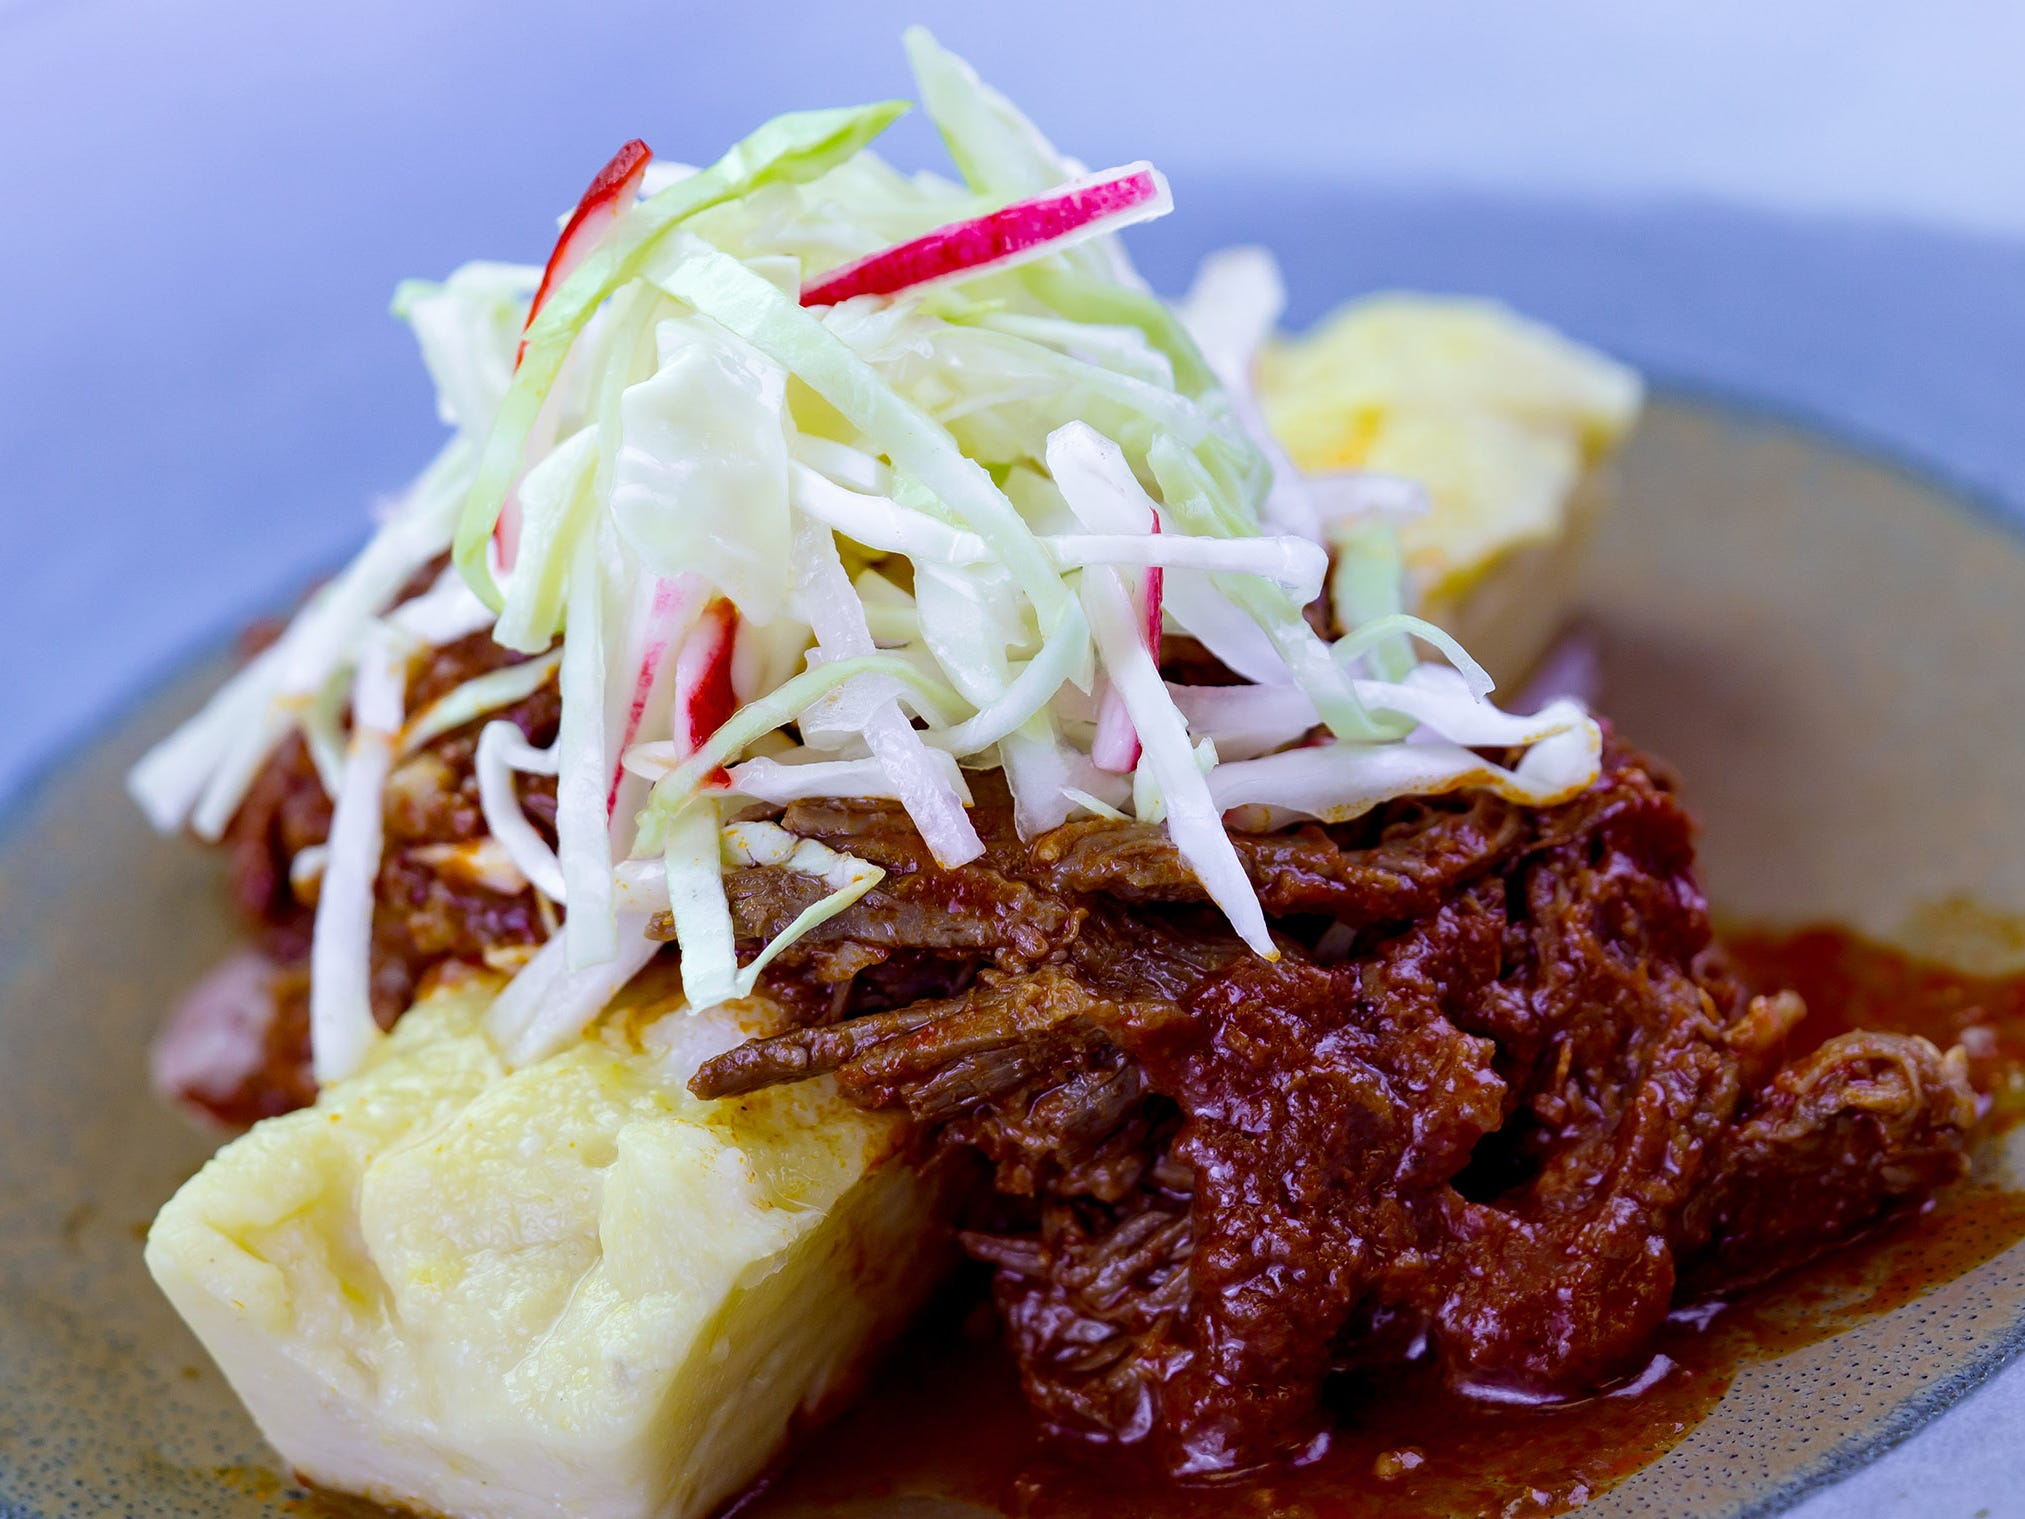 Pozole rojo beef with hominy polenta can be found at the A Twist on Tradition marketplace during Disney Festival of Holidays running Nov. 9-Jan. 8 at Disney California Adventure Park. Guests can stroll through the Festive Foods Marketplace and enjoy a variety of holiday comfort dishes that span cultures and family traditions.